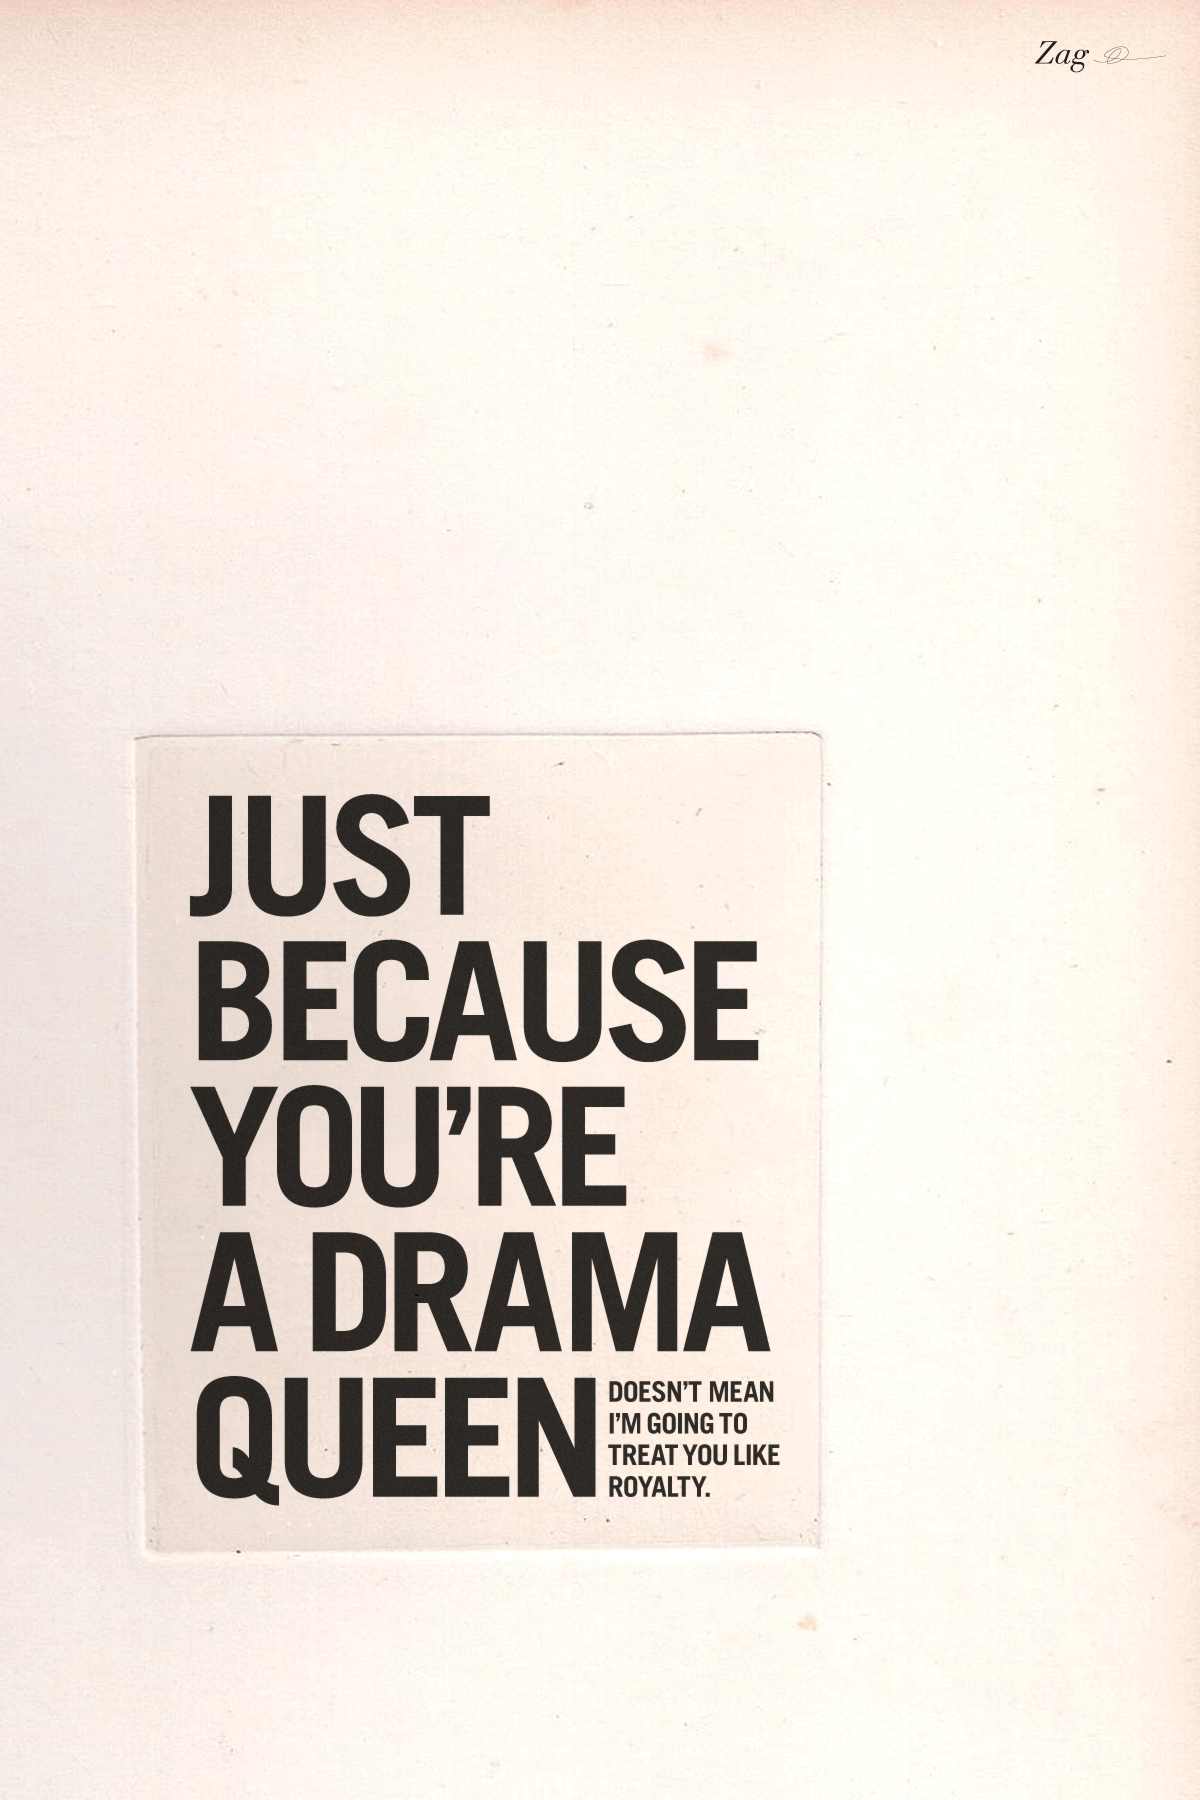 Drama Queen Quotes And Sayings Quotesgram - Wallpaperzen.org